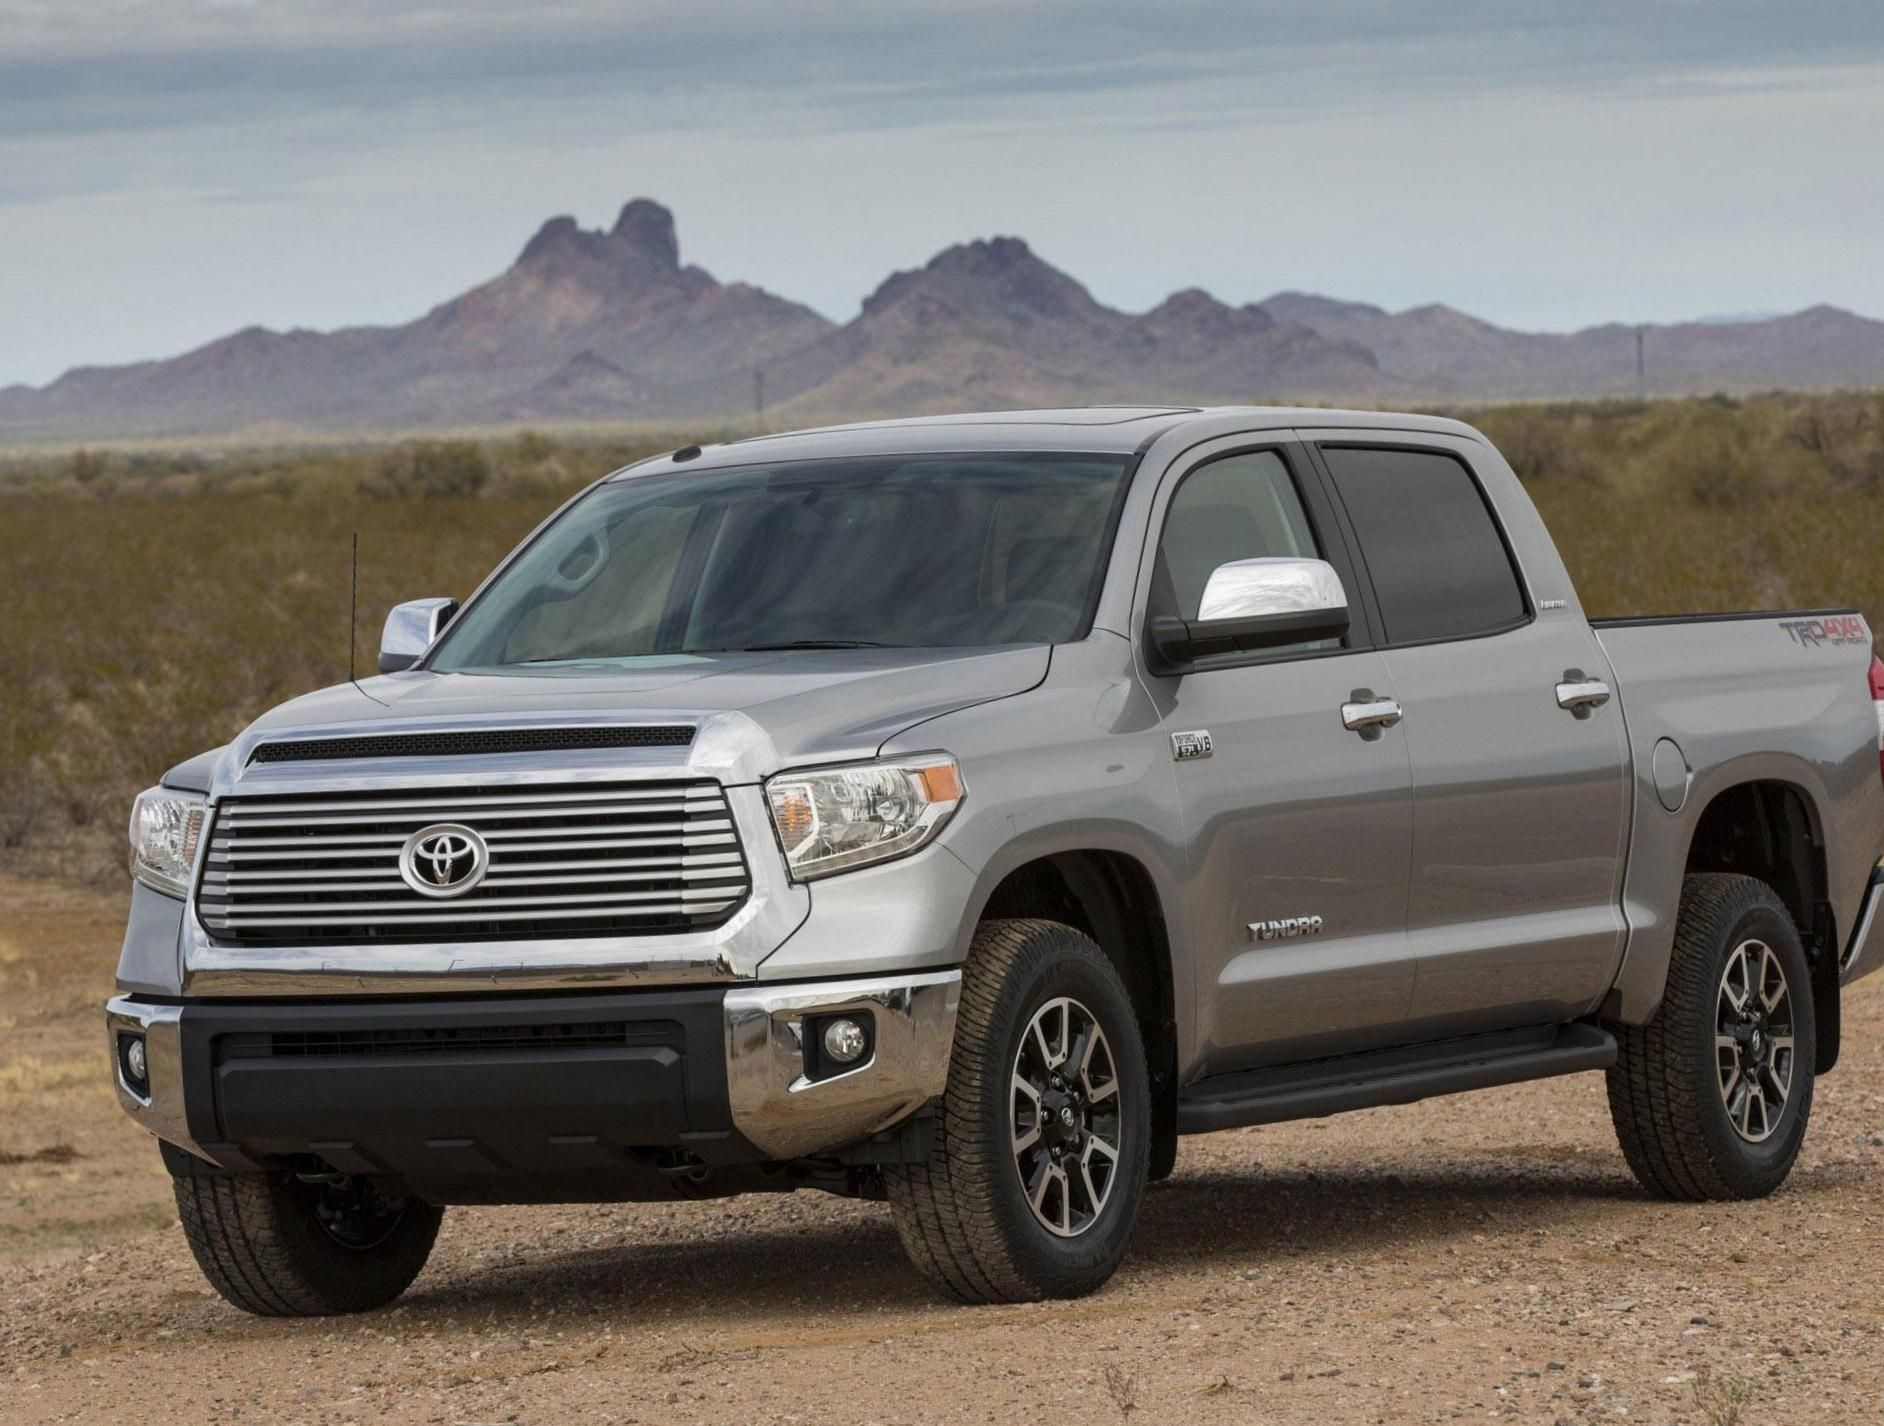 2018 toyota tundra diesel for sale toyota recommendation toyota recommendation pinterest toyota tundra toyota and diesel